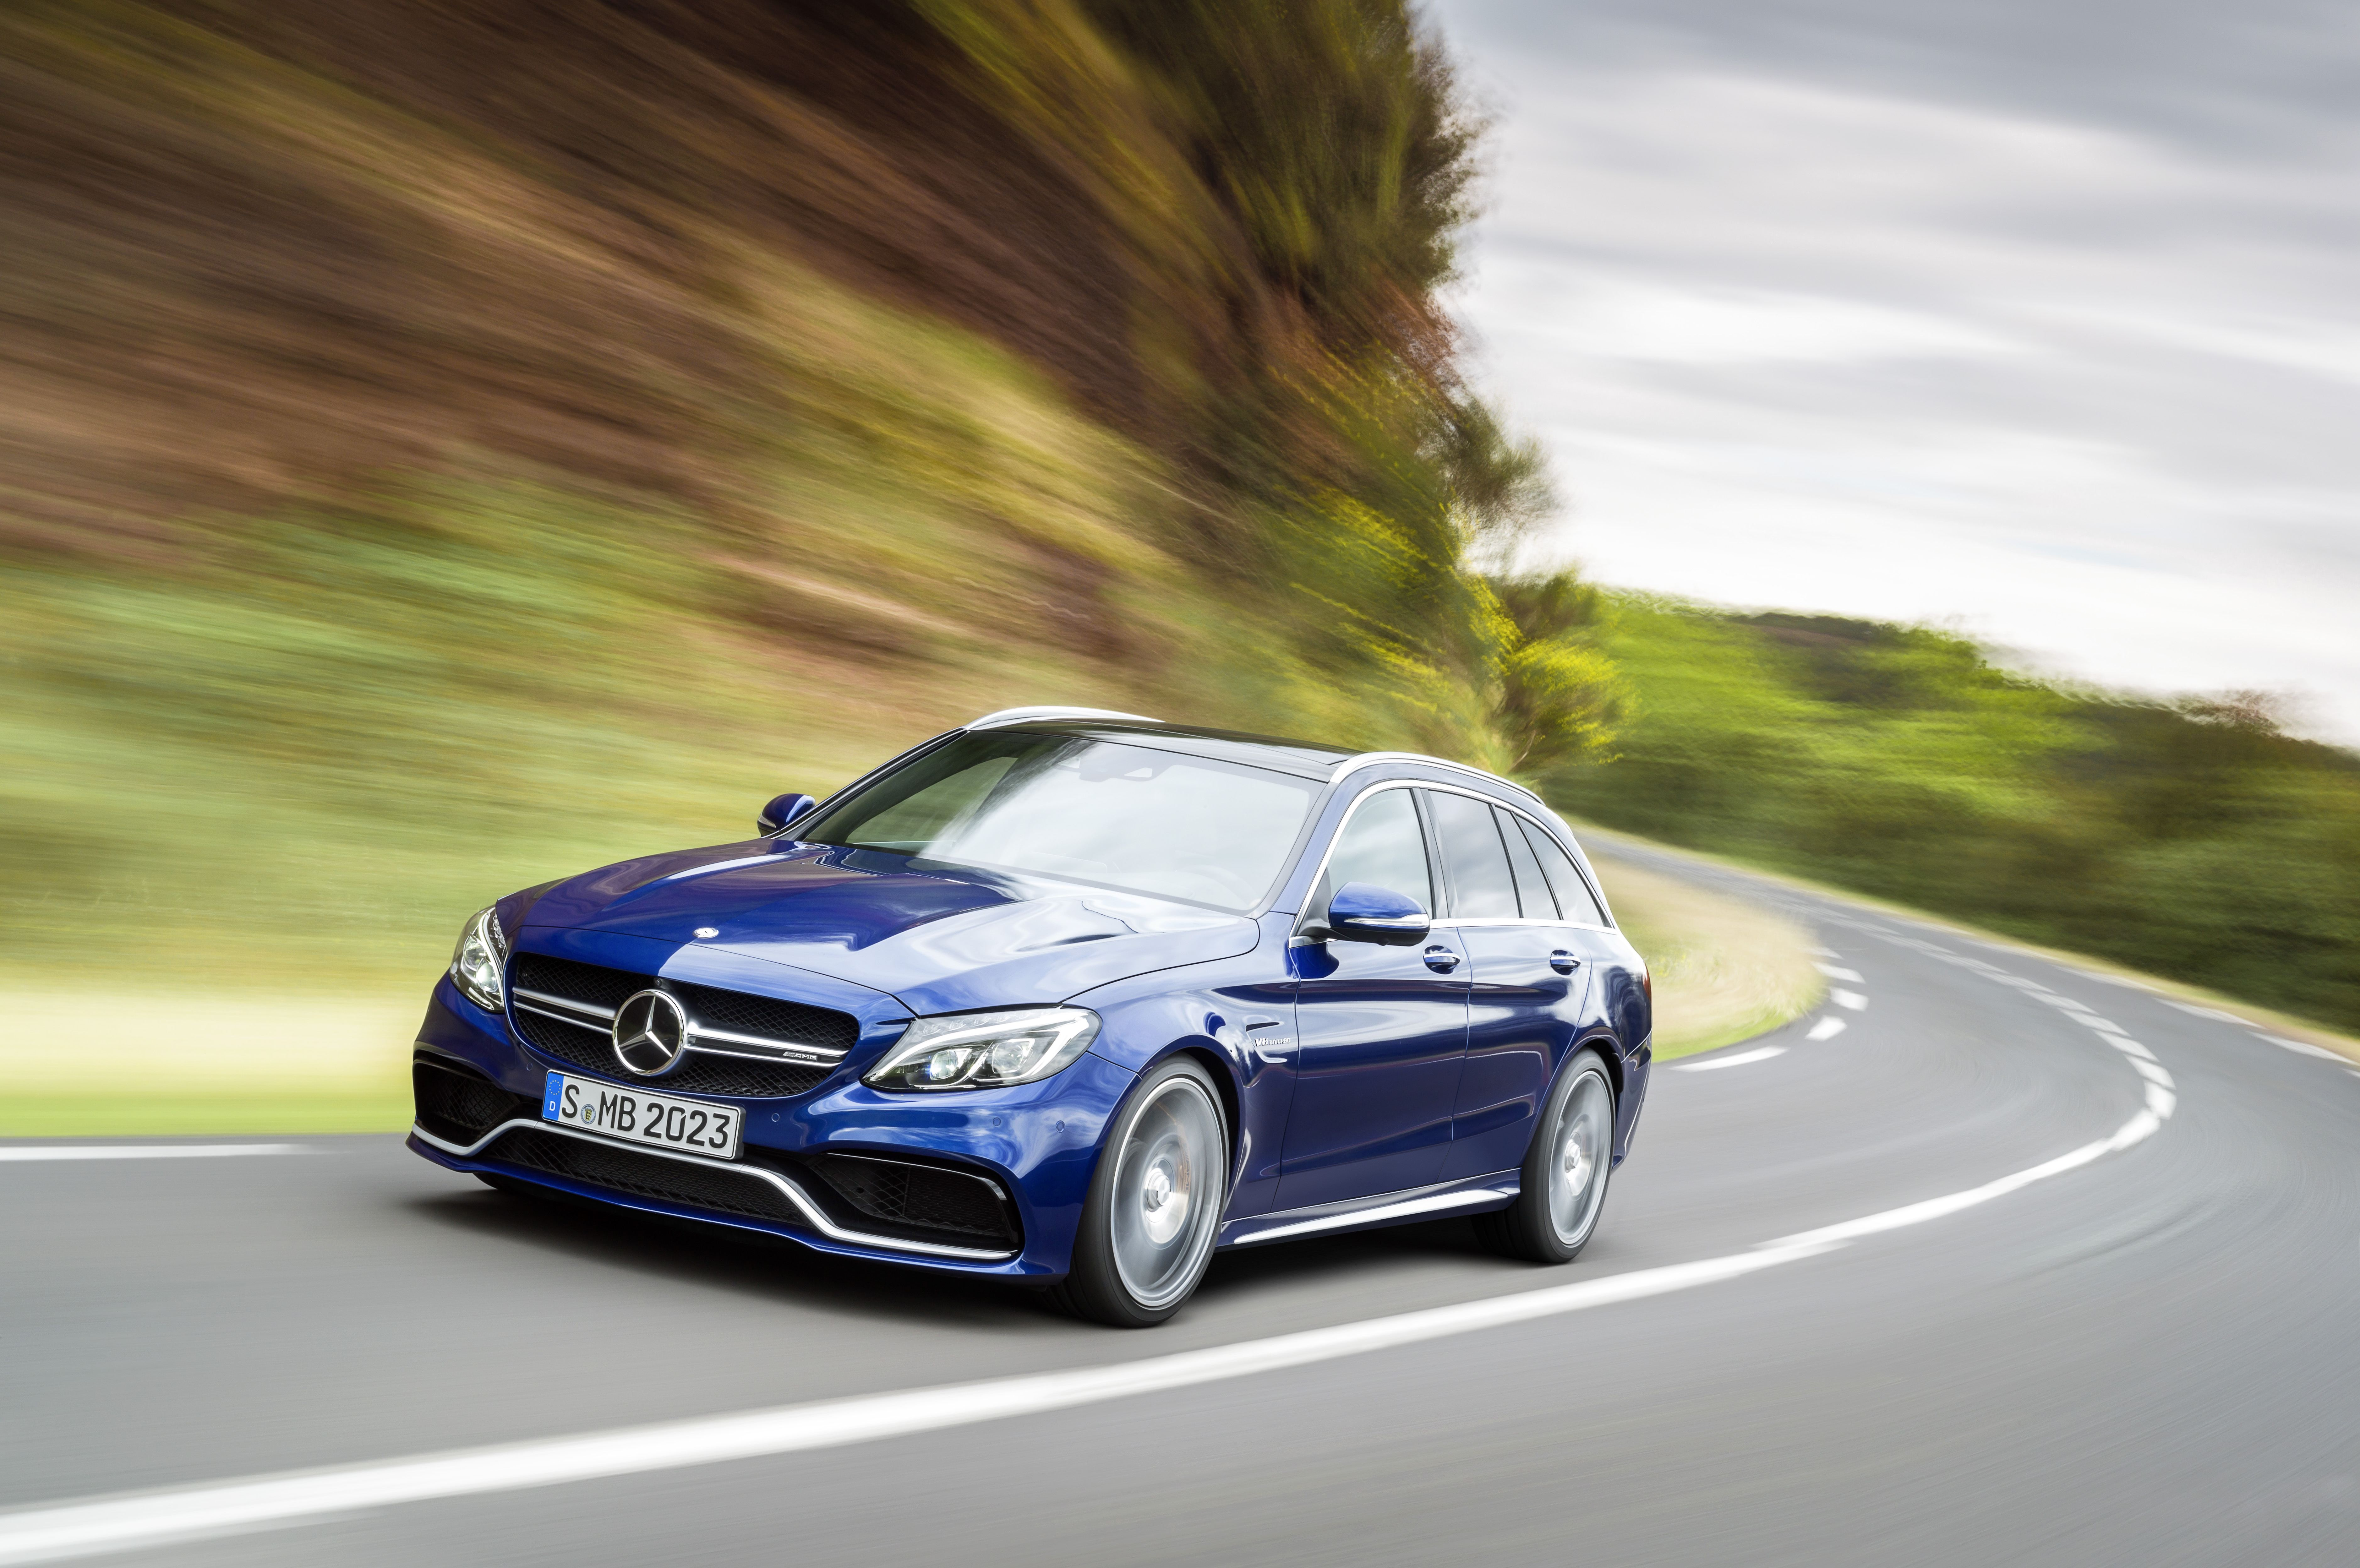 the all new mercedes amg c 63 is a all new machine